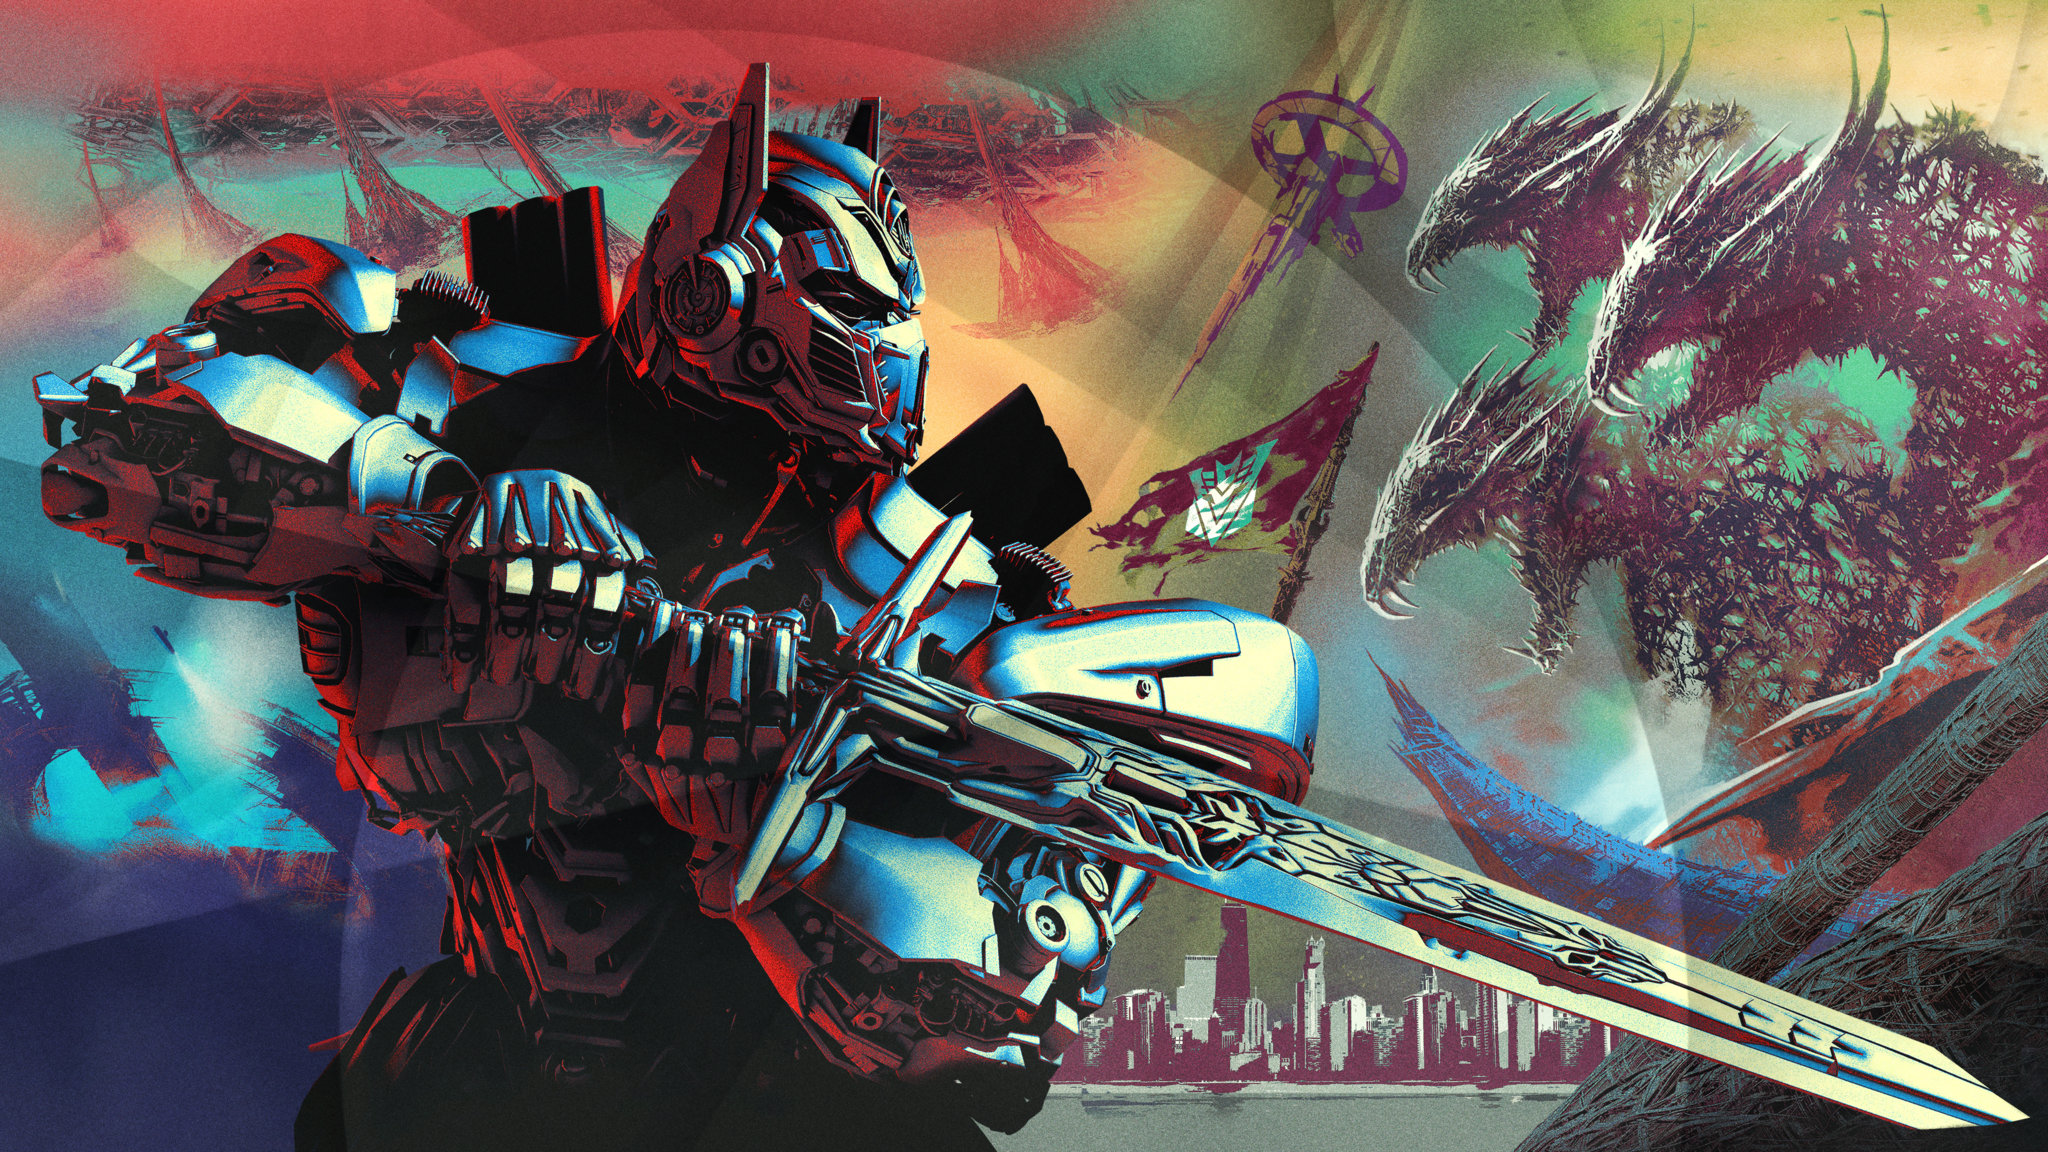 optimus-prime-5120x2880-transformers-the-last-knight-2017-movies-2209.jpg